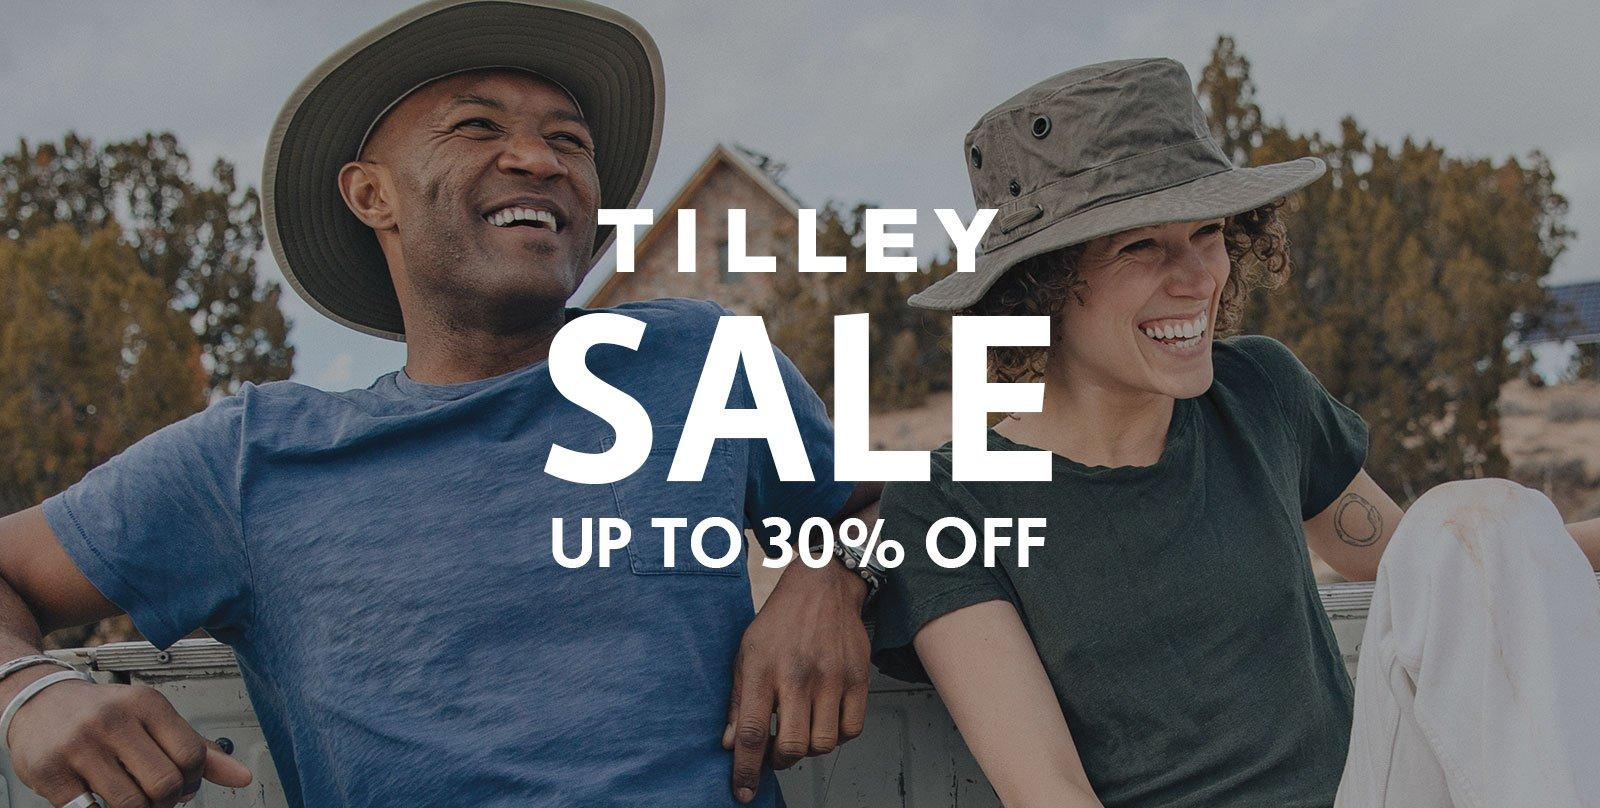 Up to 30% Off TILLEY